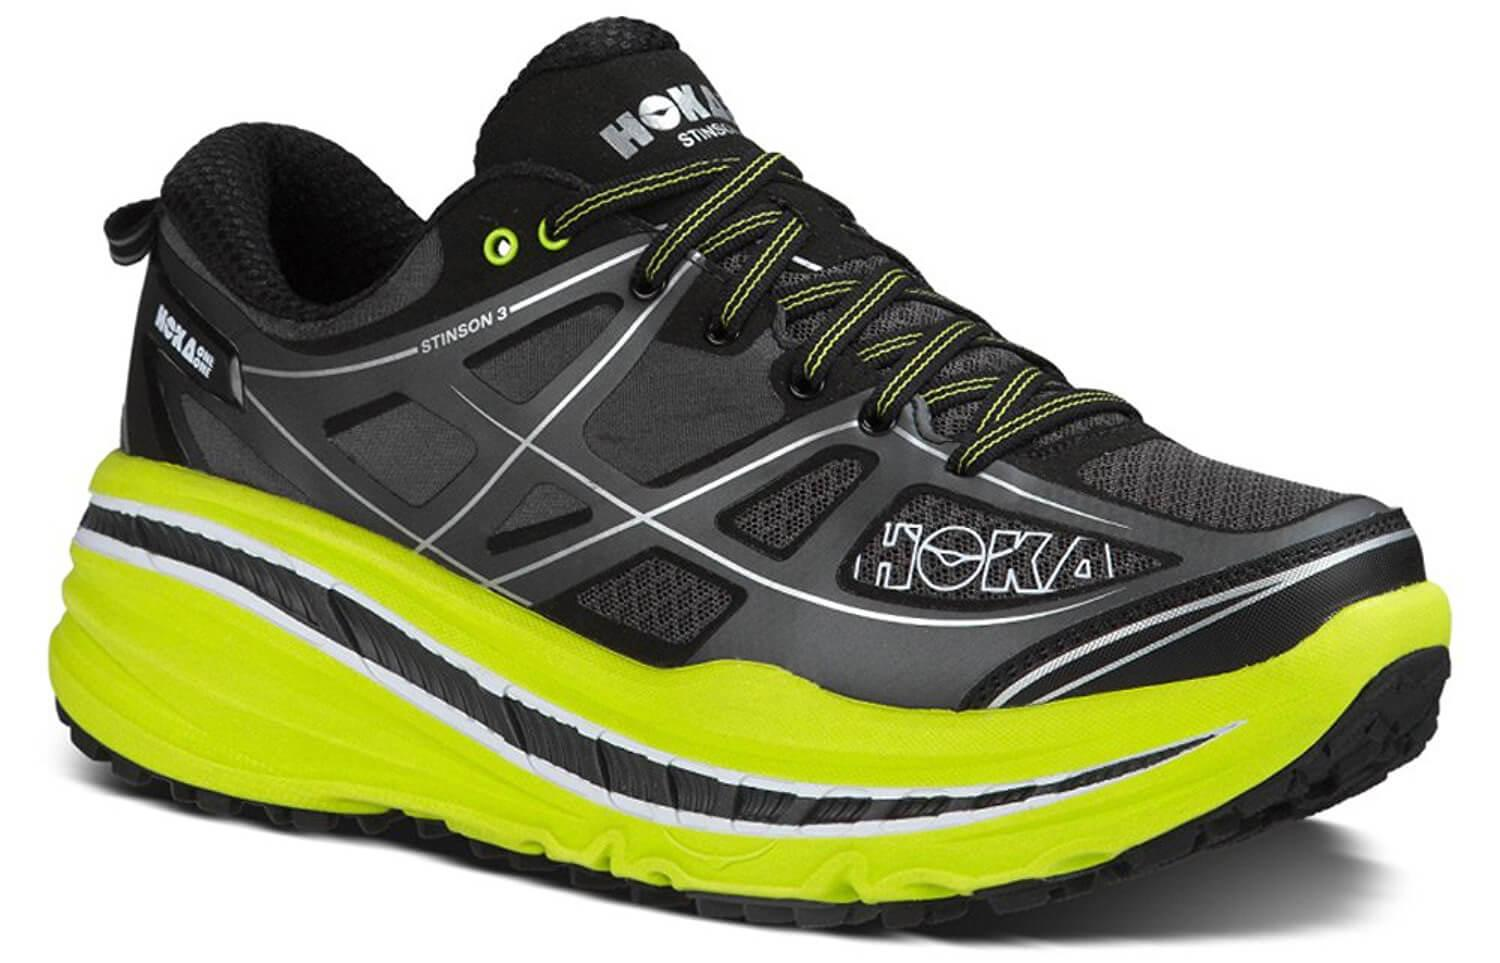 Hoka Stinson Running Shoes Review